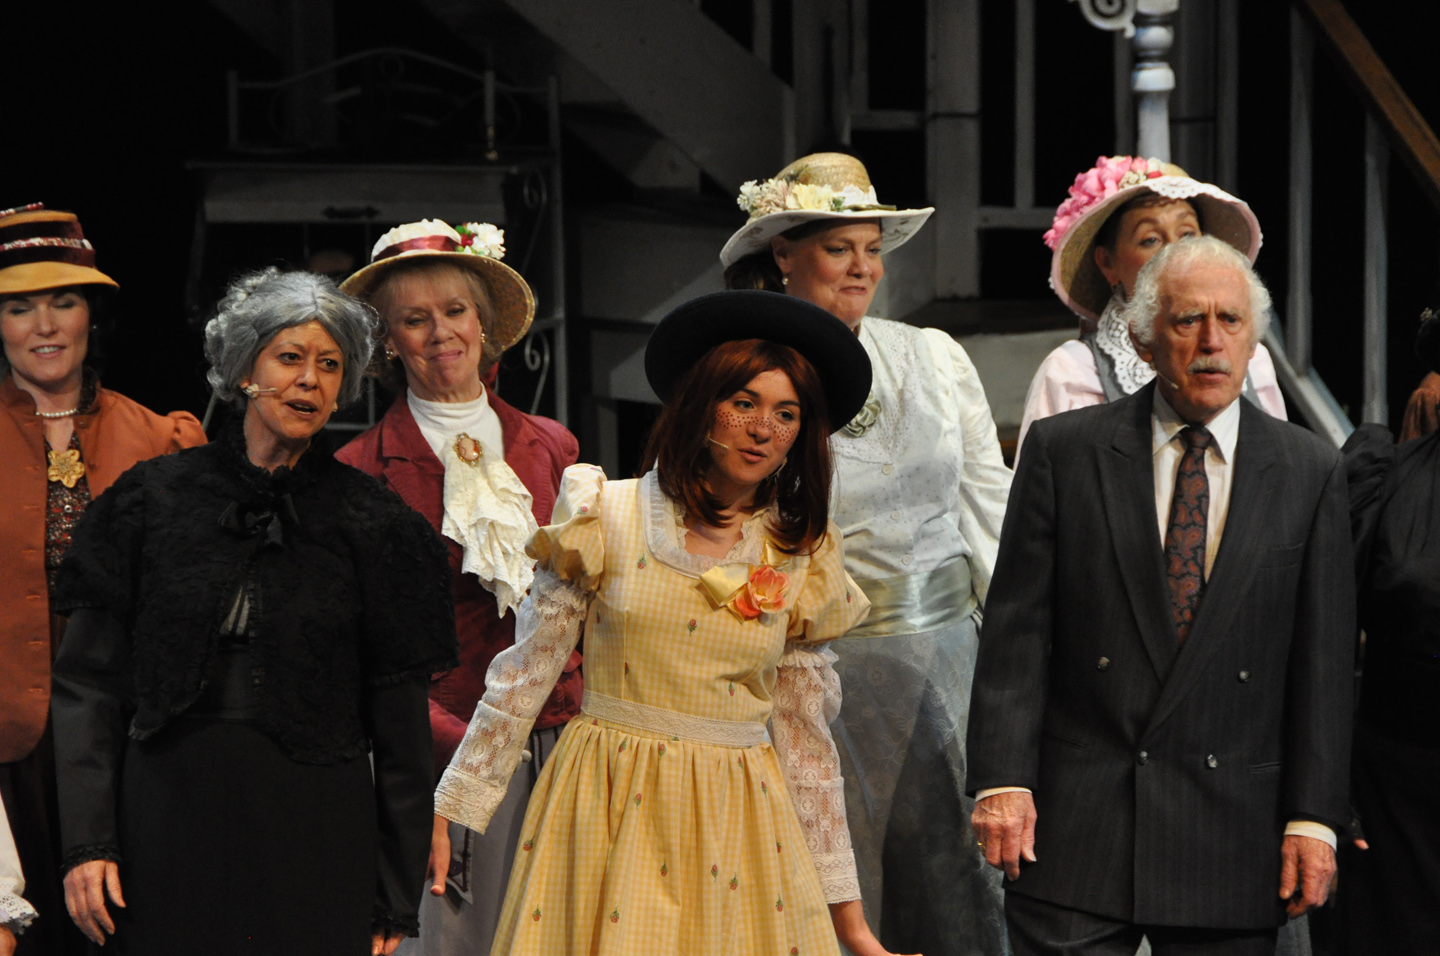 anne of green gables_act2  128